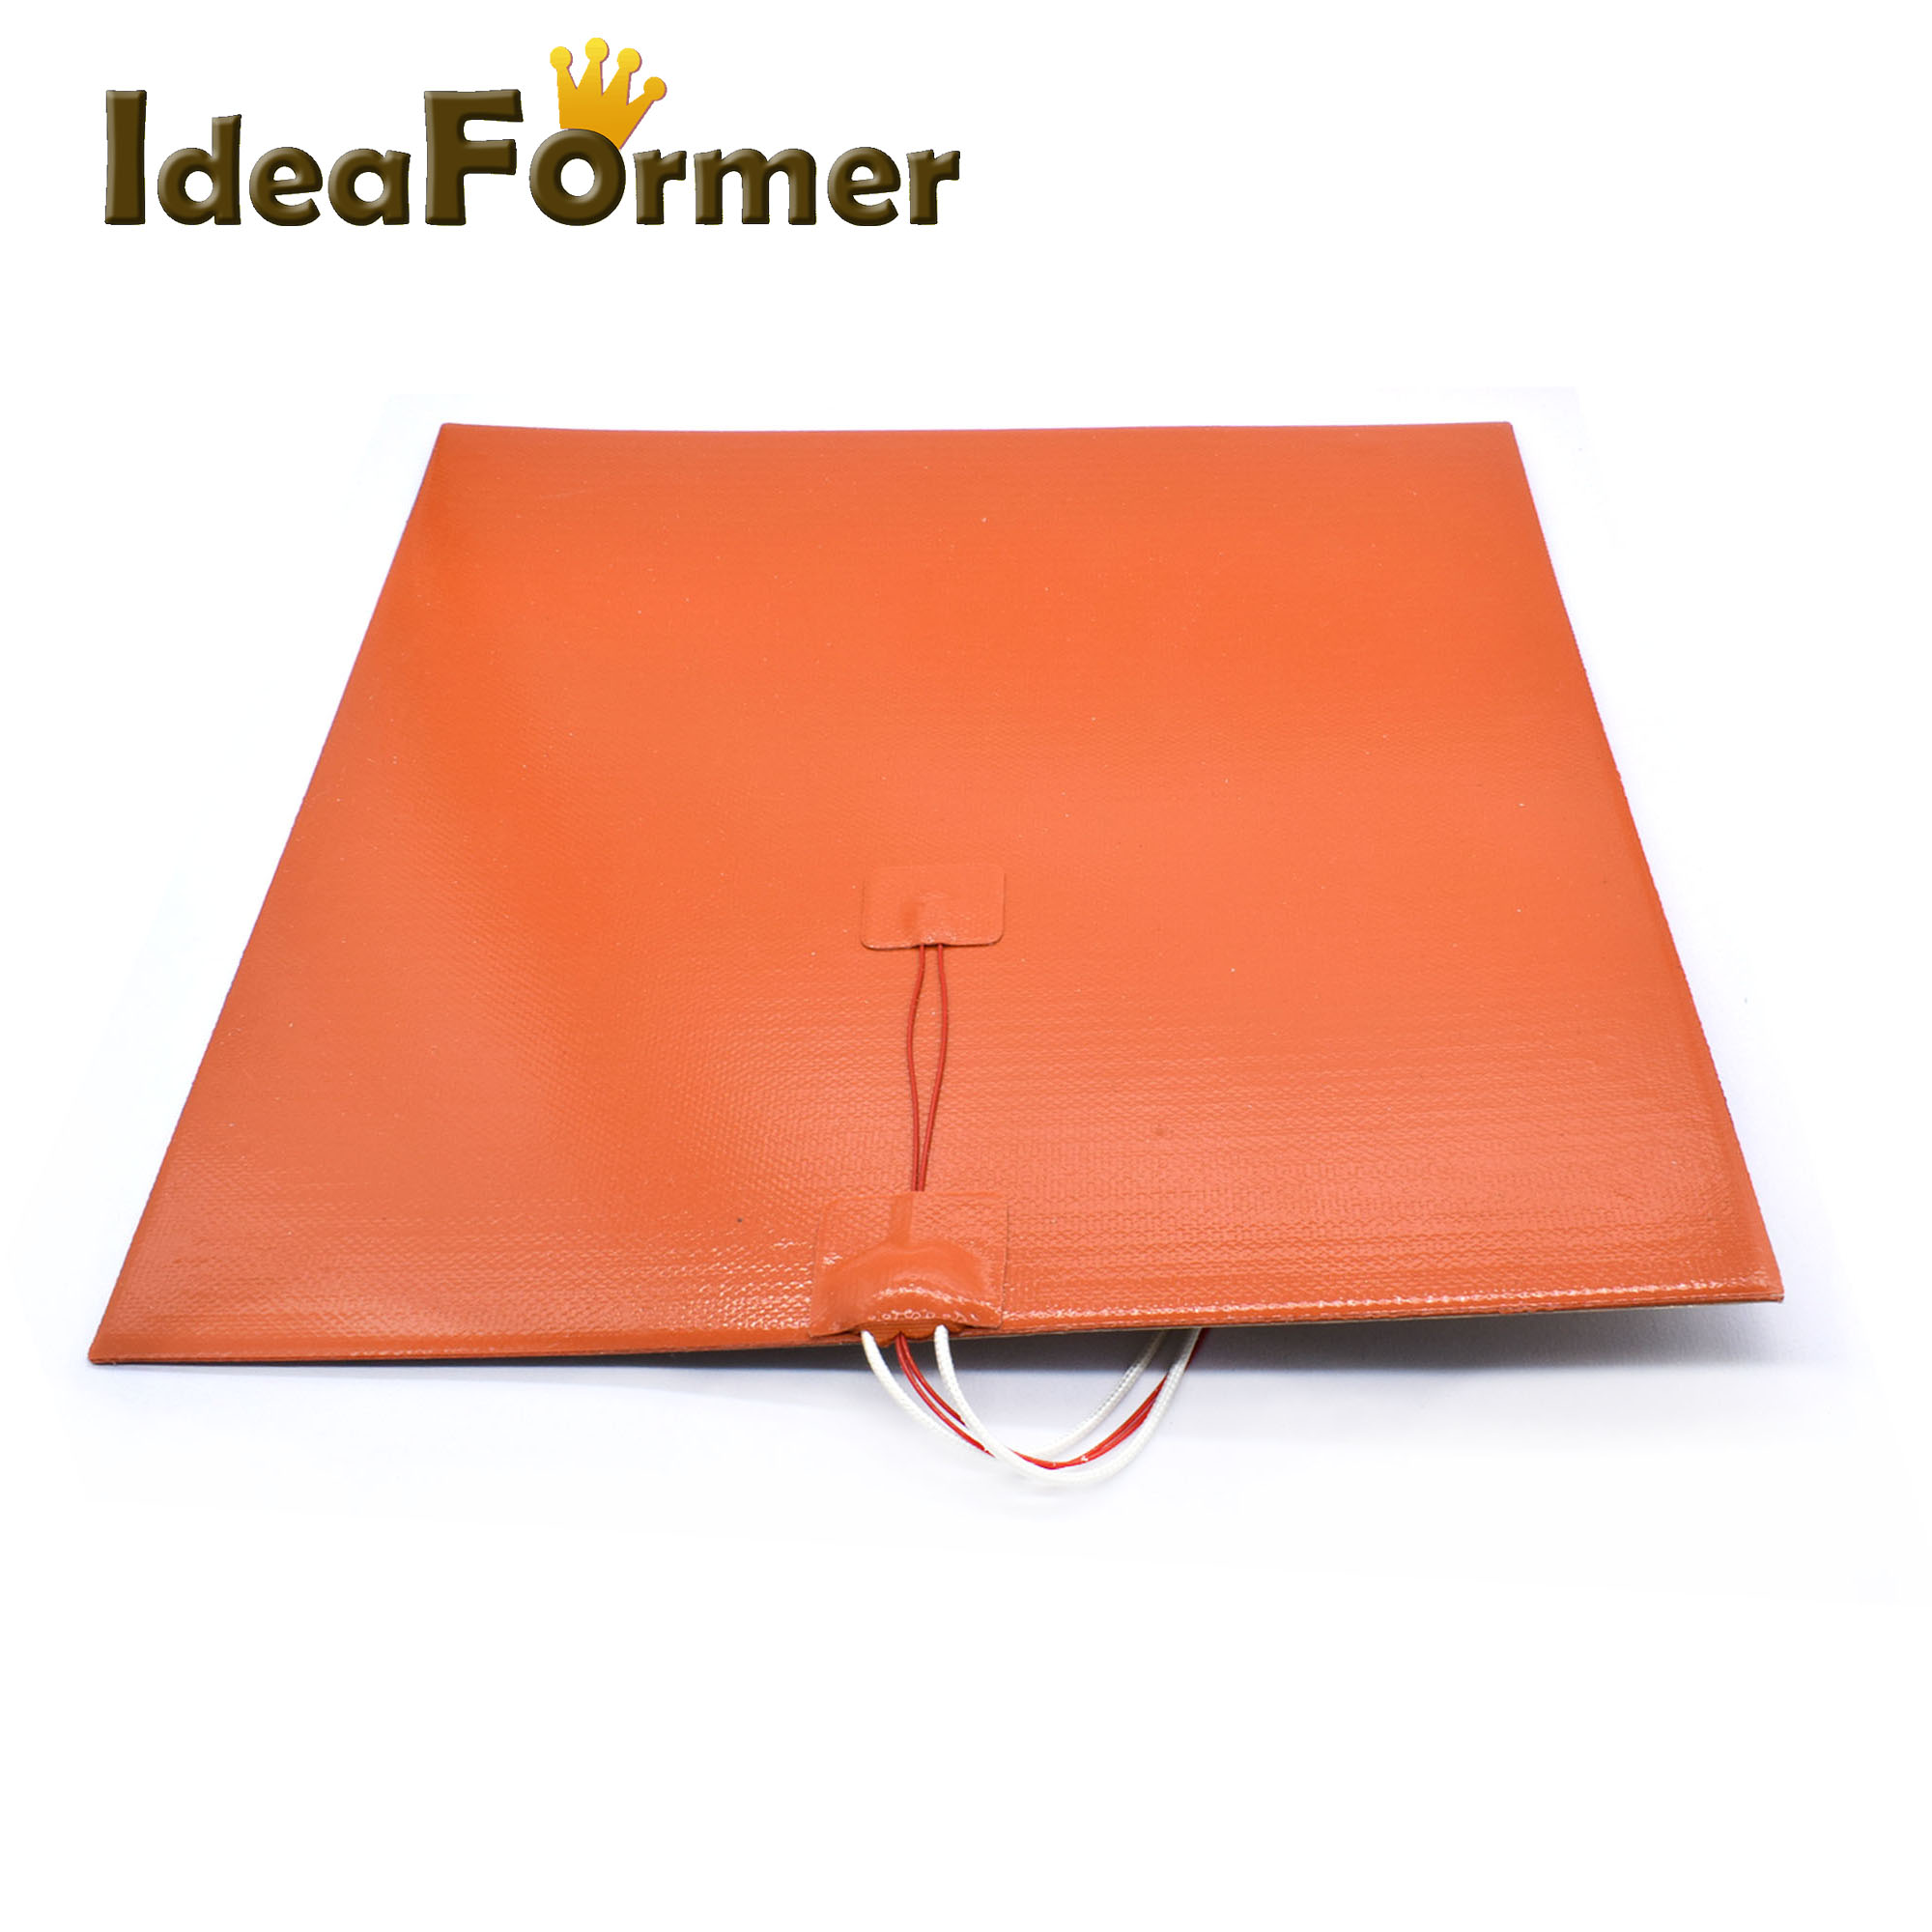 Silicone Heating Pad Heater 400*400 24V 800W For 3D Printer Hot Bed